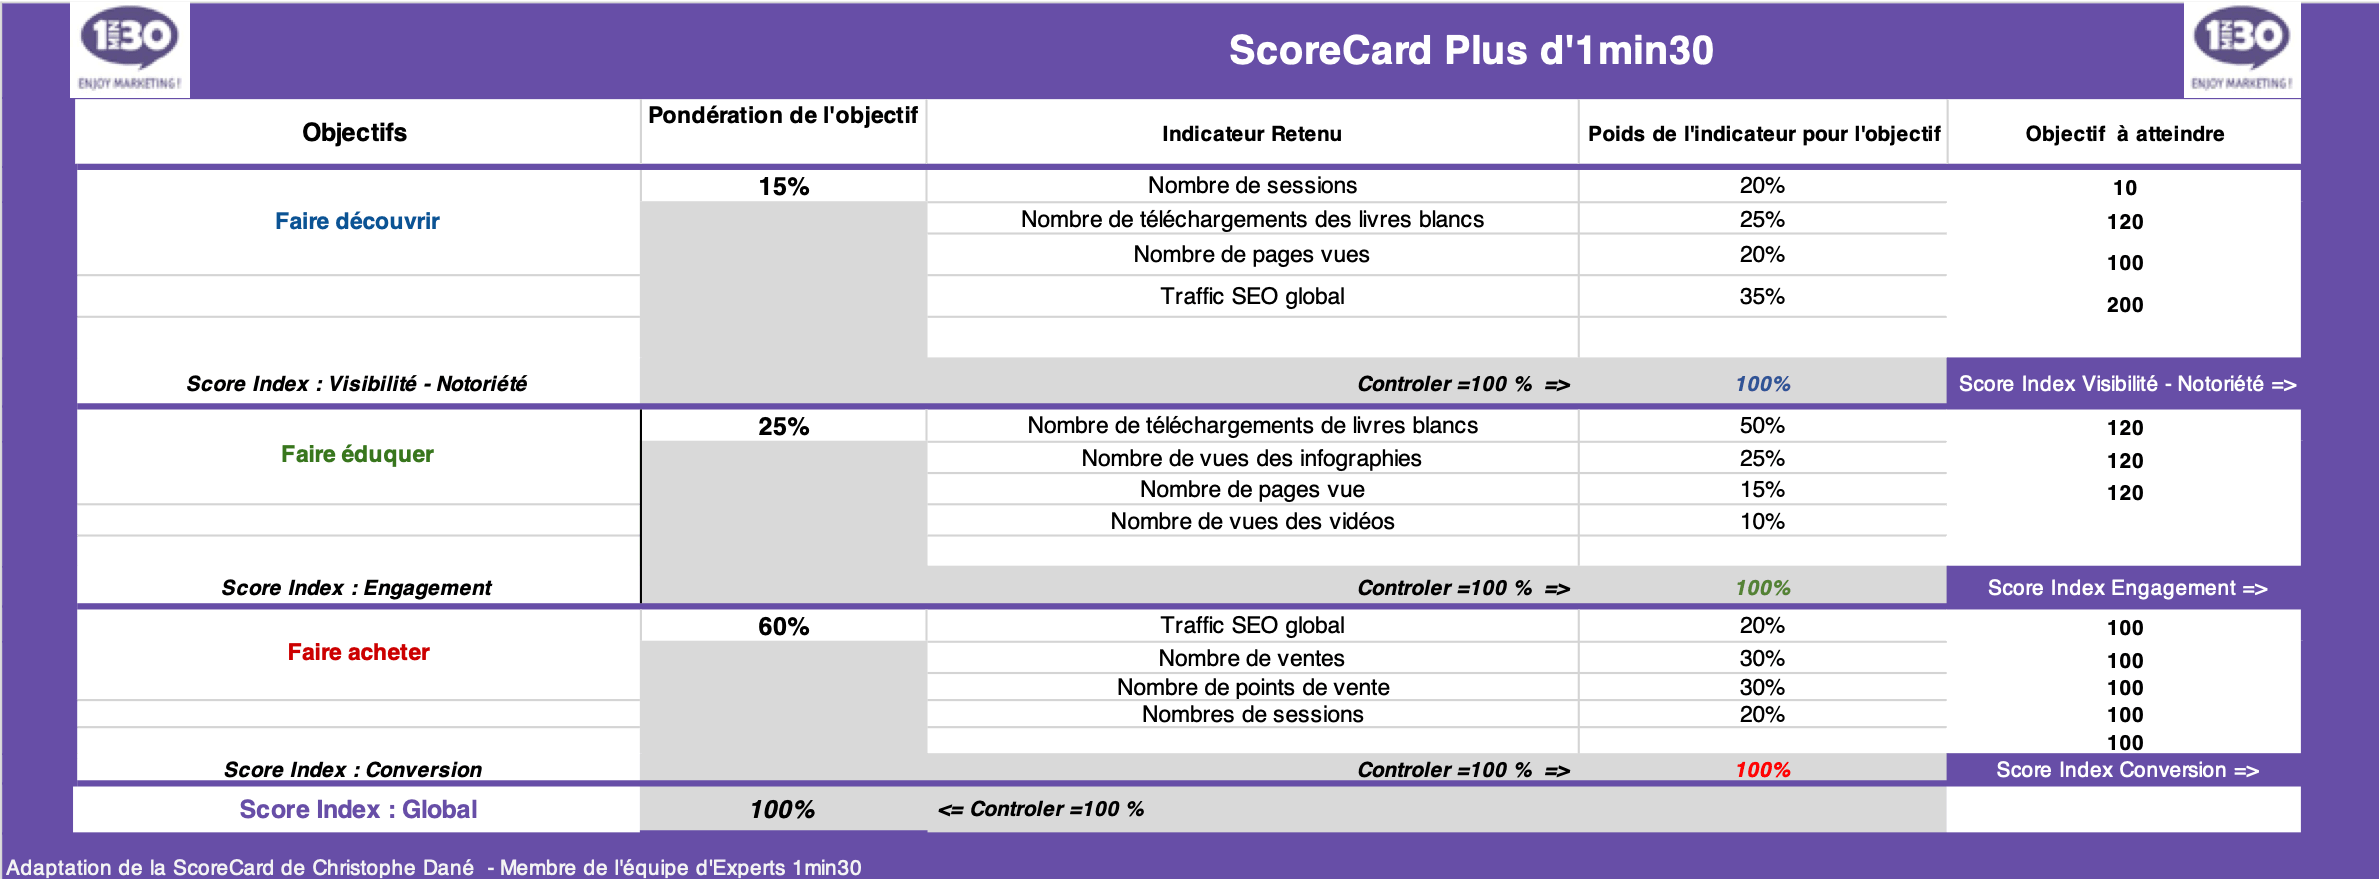 dispositif-medical-scorecard